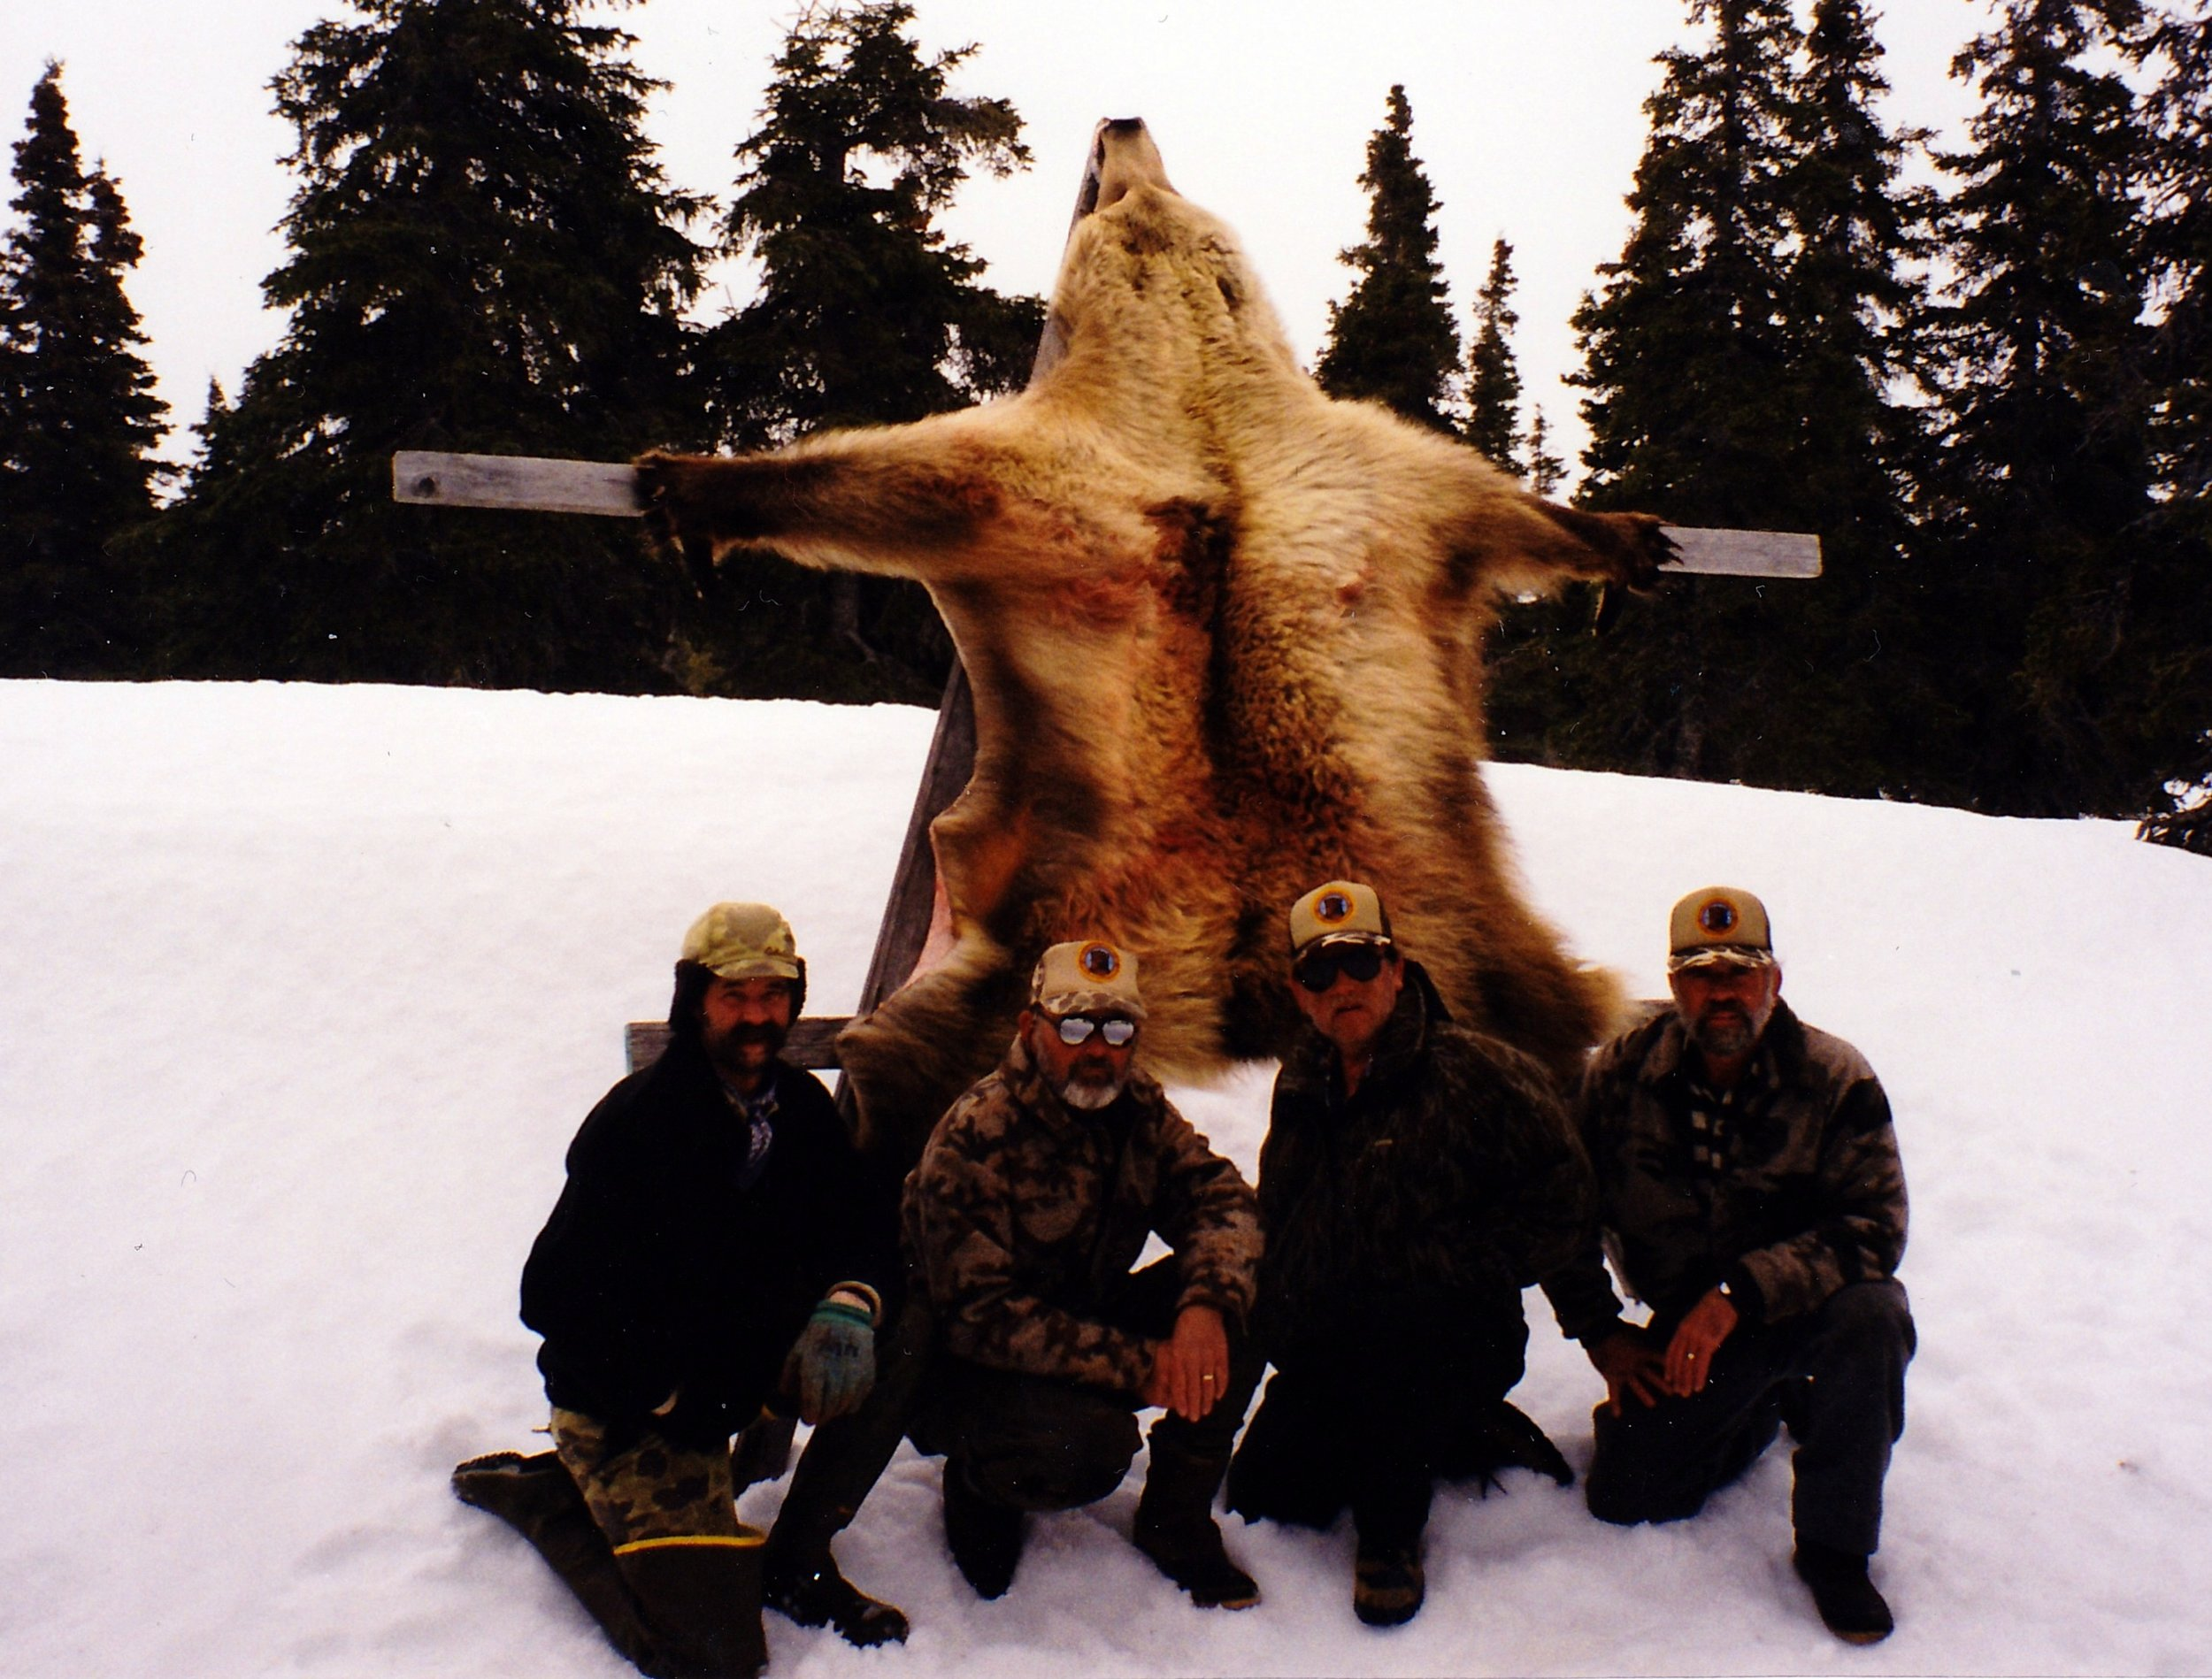 """1999, (L to R) Guide John Koldeway, Dan, """"Wild Bill"""" Lee, Hanover, PA and myself. When Wild Bill got back to Anchorage he was in one of the local bars and was bragging about his beautiful """"Blond"""" bear and when he returned to his rental car the bear had been stolen. Not good! Unfortunately, the bear was never recovered."""